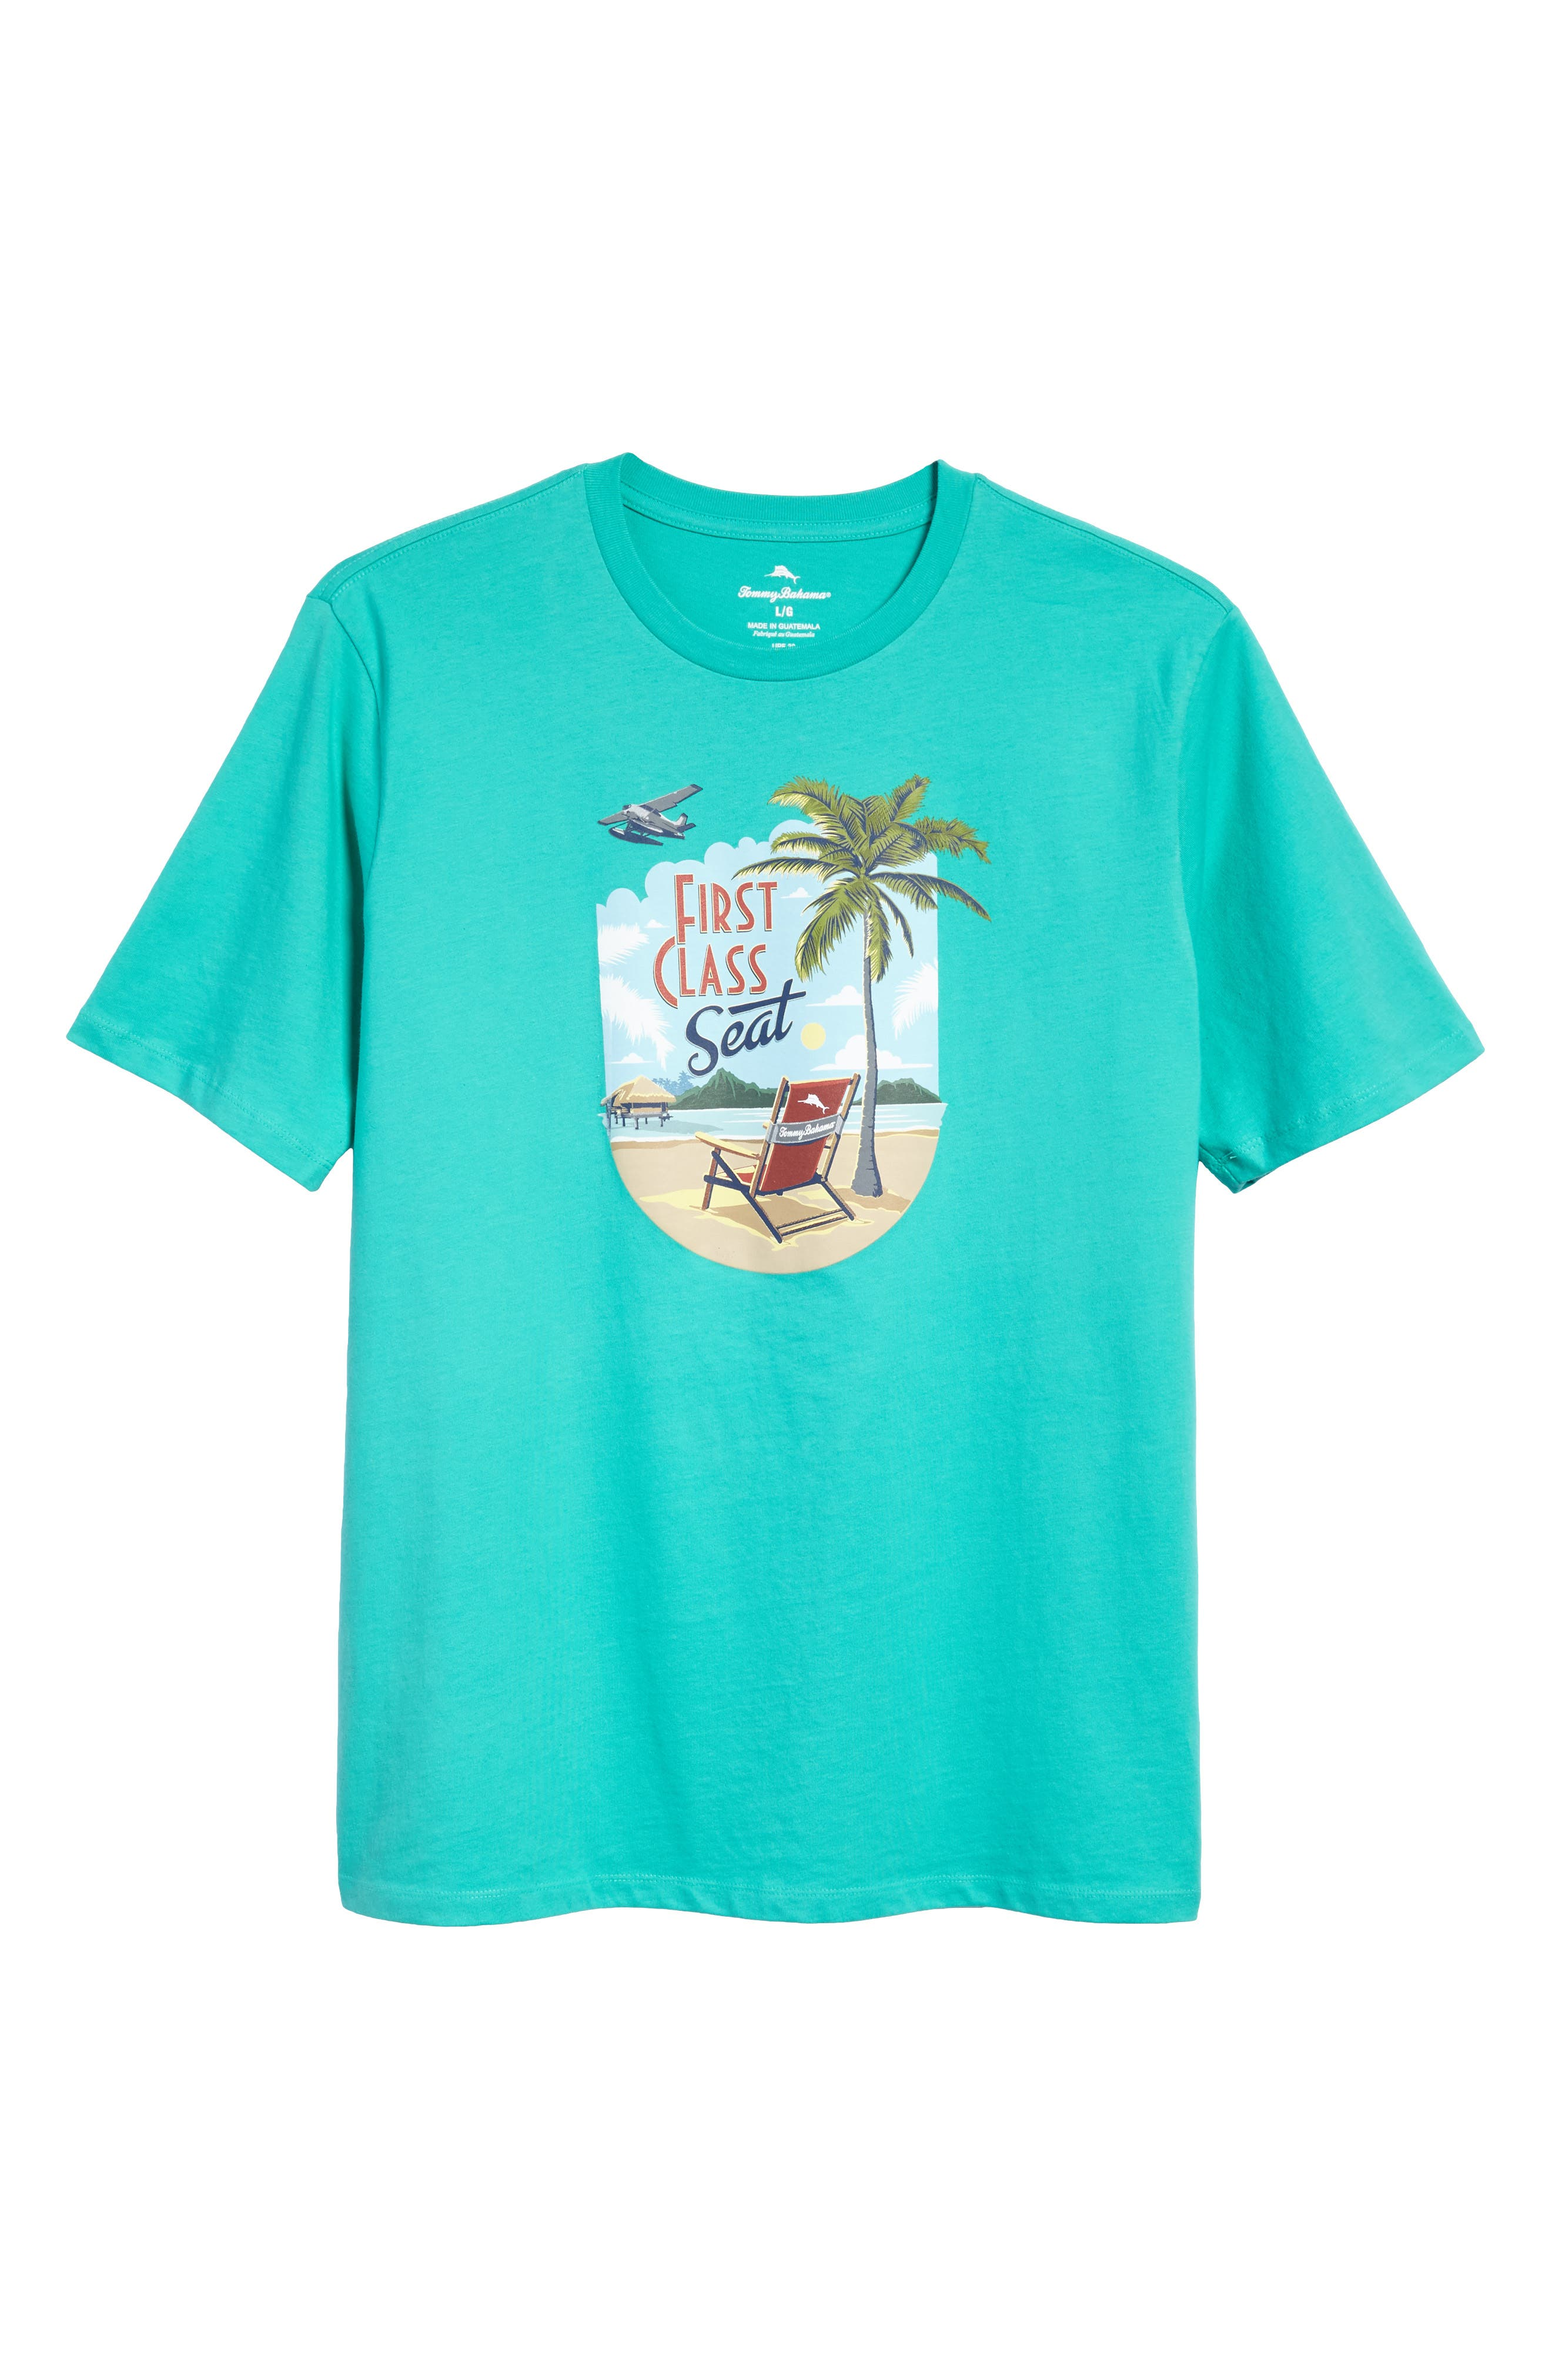 First Class Seat T-Shirt,                             Alternate thumbnail 7, color,                             Cave Green